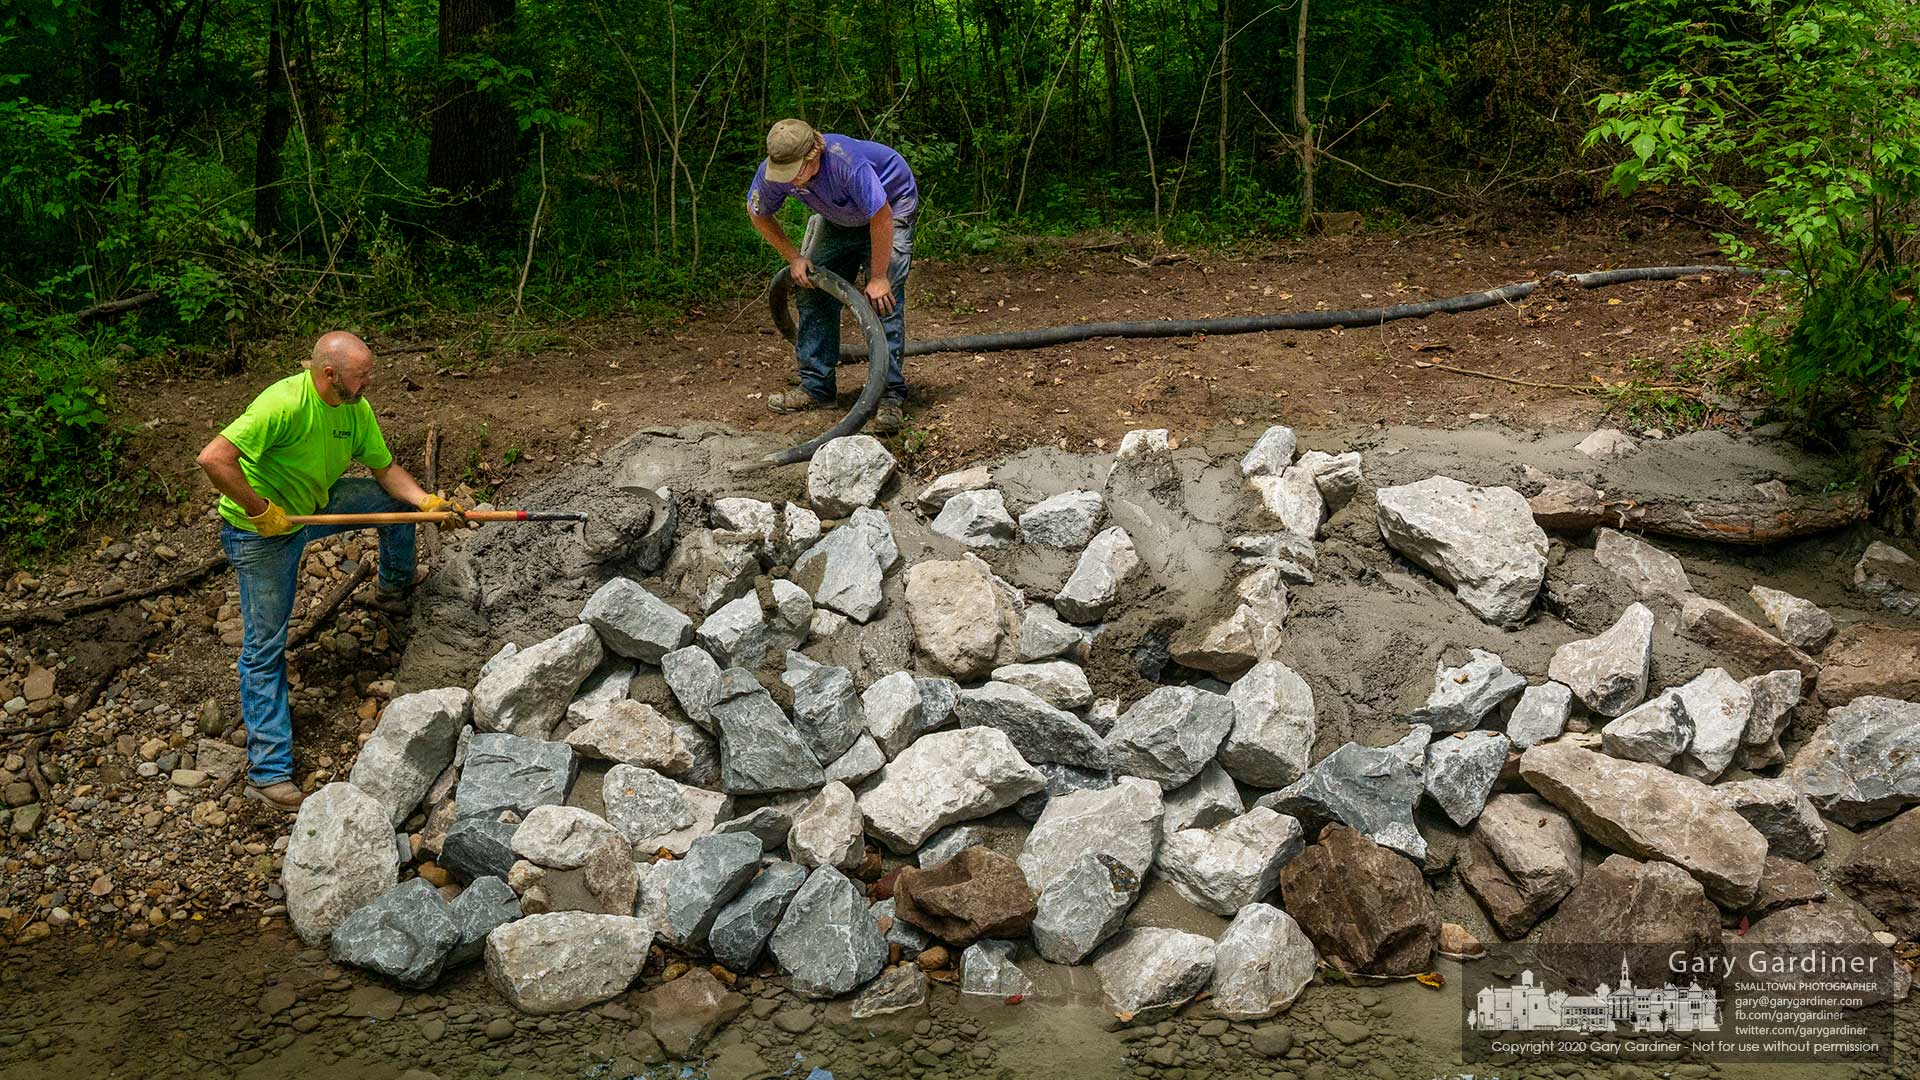 Contractors pump concrete into the void between rocks placed into the edge of Alkire Run to mediate erosion near the bridge on the path that leads to the fields adjacent to the Community Center. My Final Photo for Aug. 11, 2020.